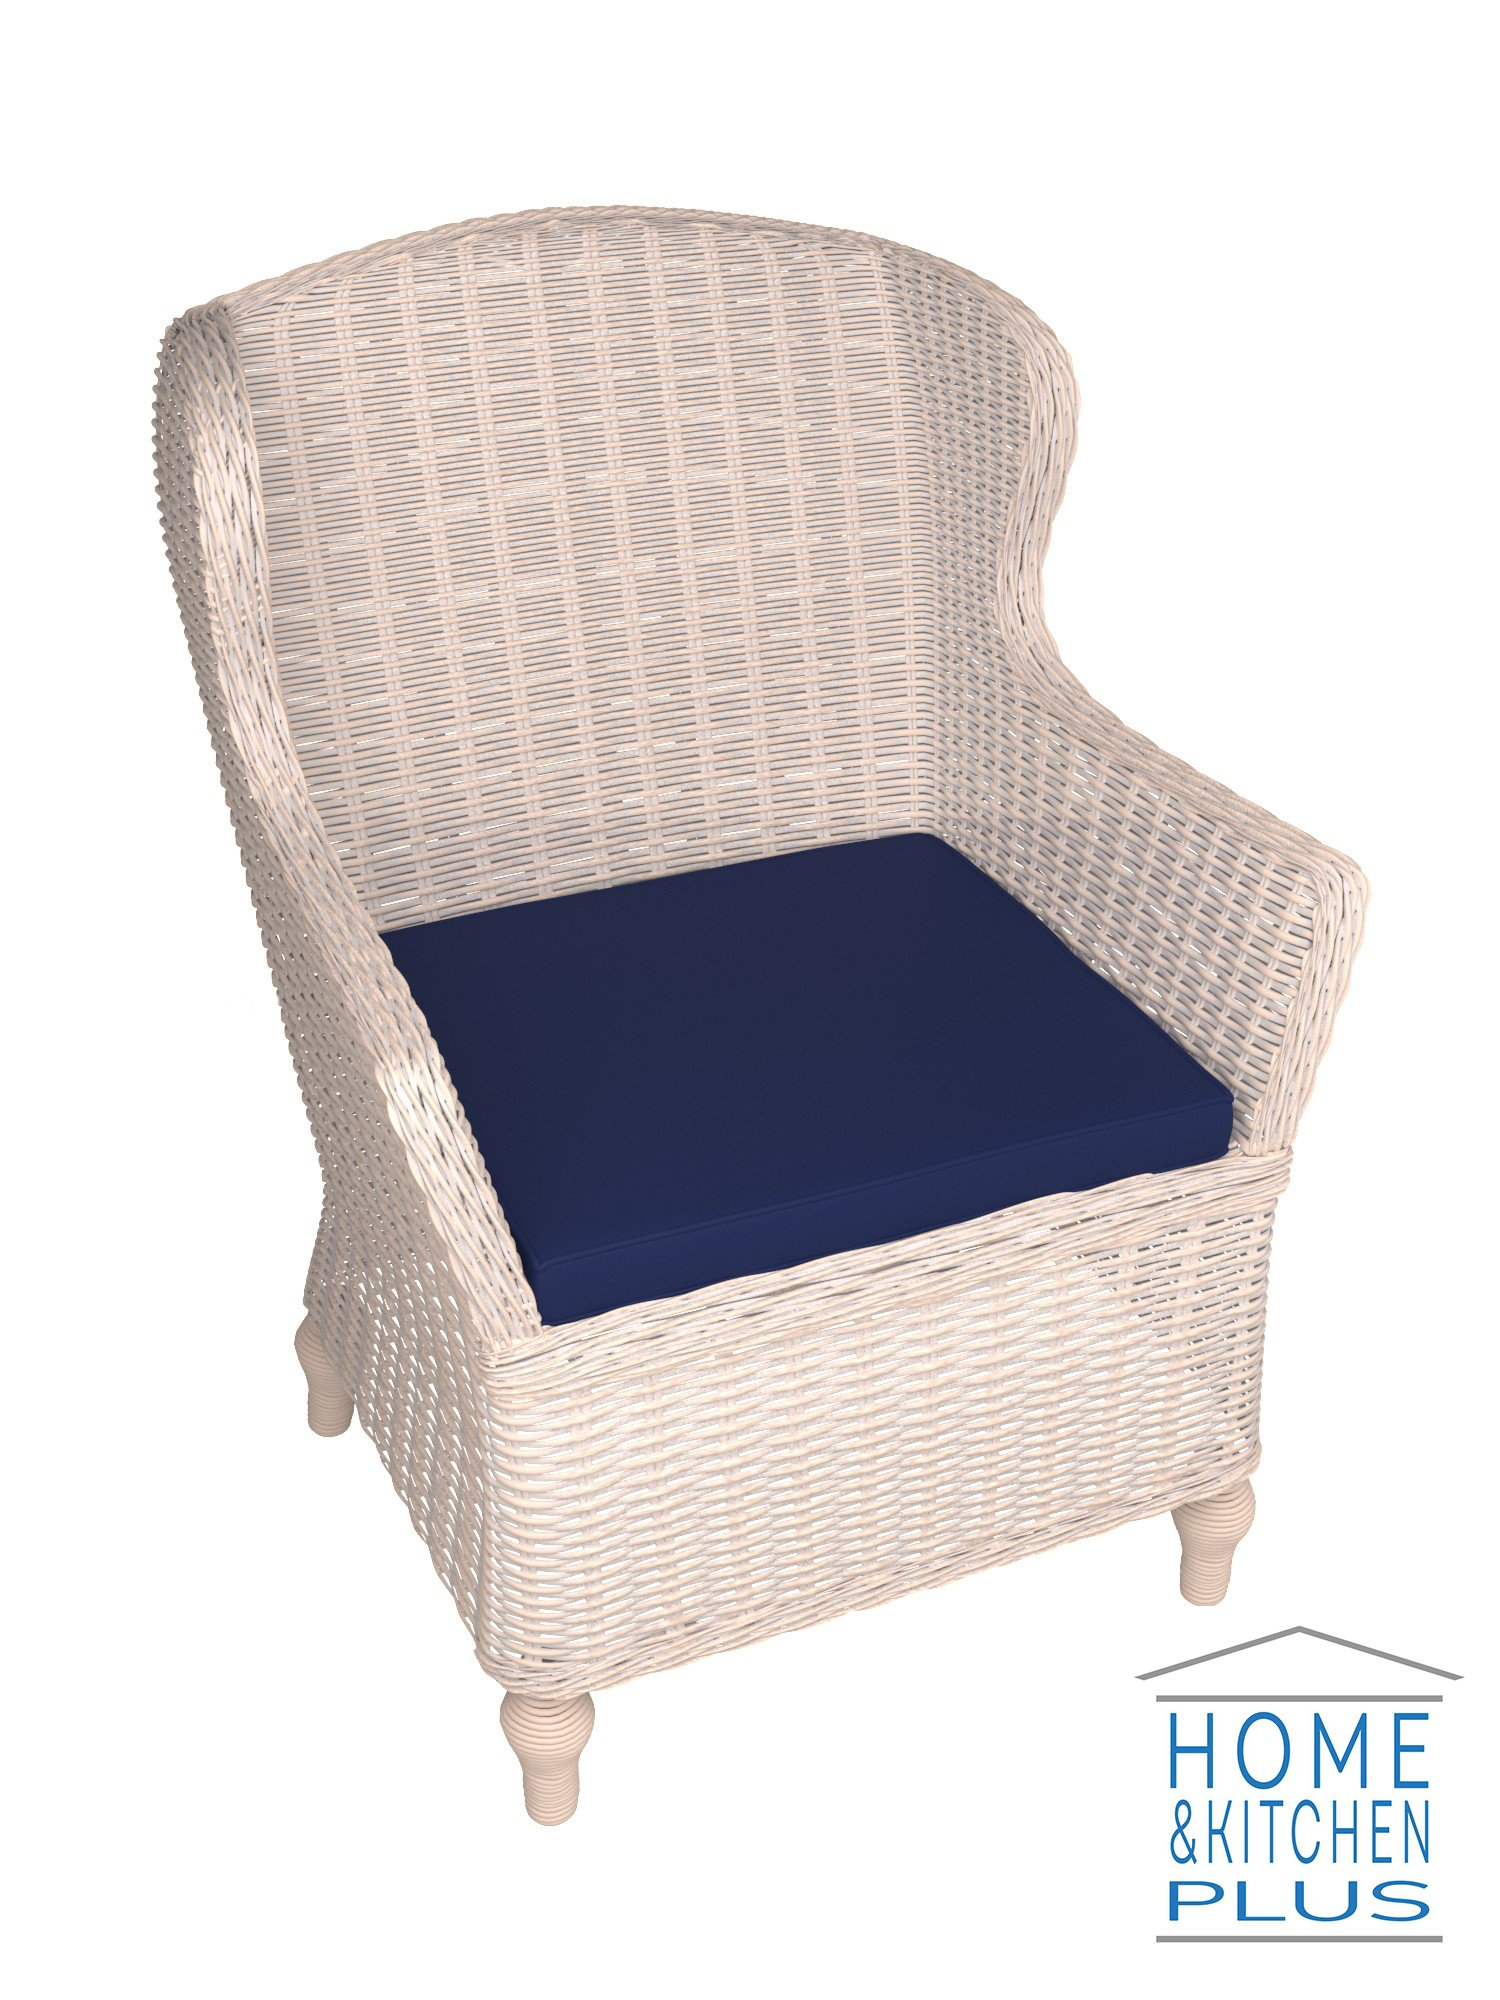 Outdoor Chair Cushions Patio Seat Pads Set of 2